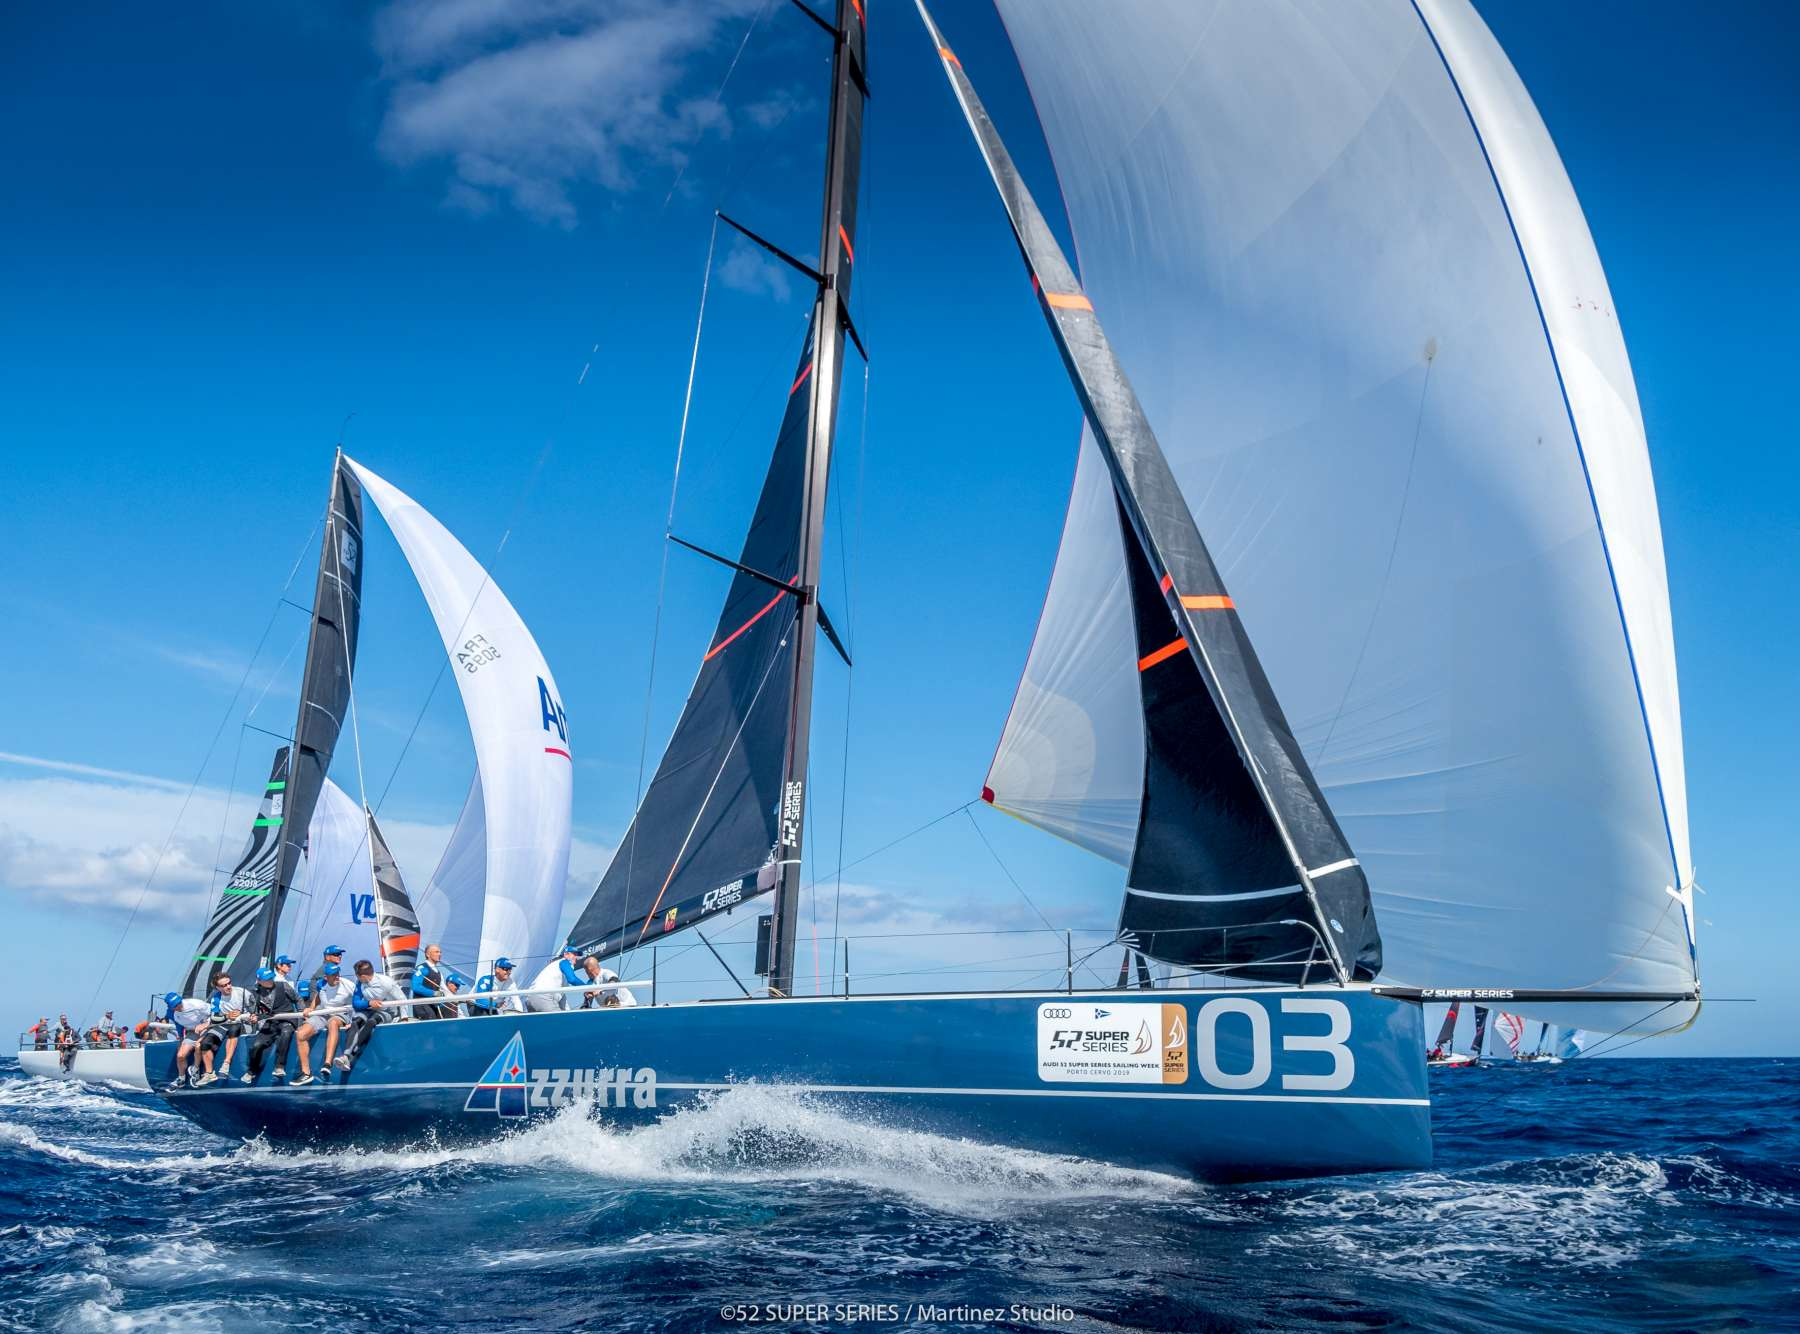 Final Day of Audi 52 Super Series Sailing Week  - NEWS - Yacht Club Costa Smeralda